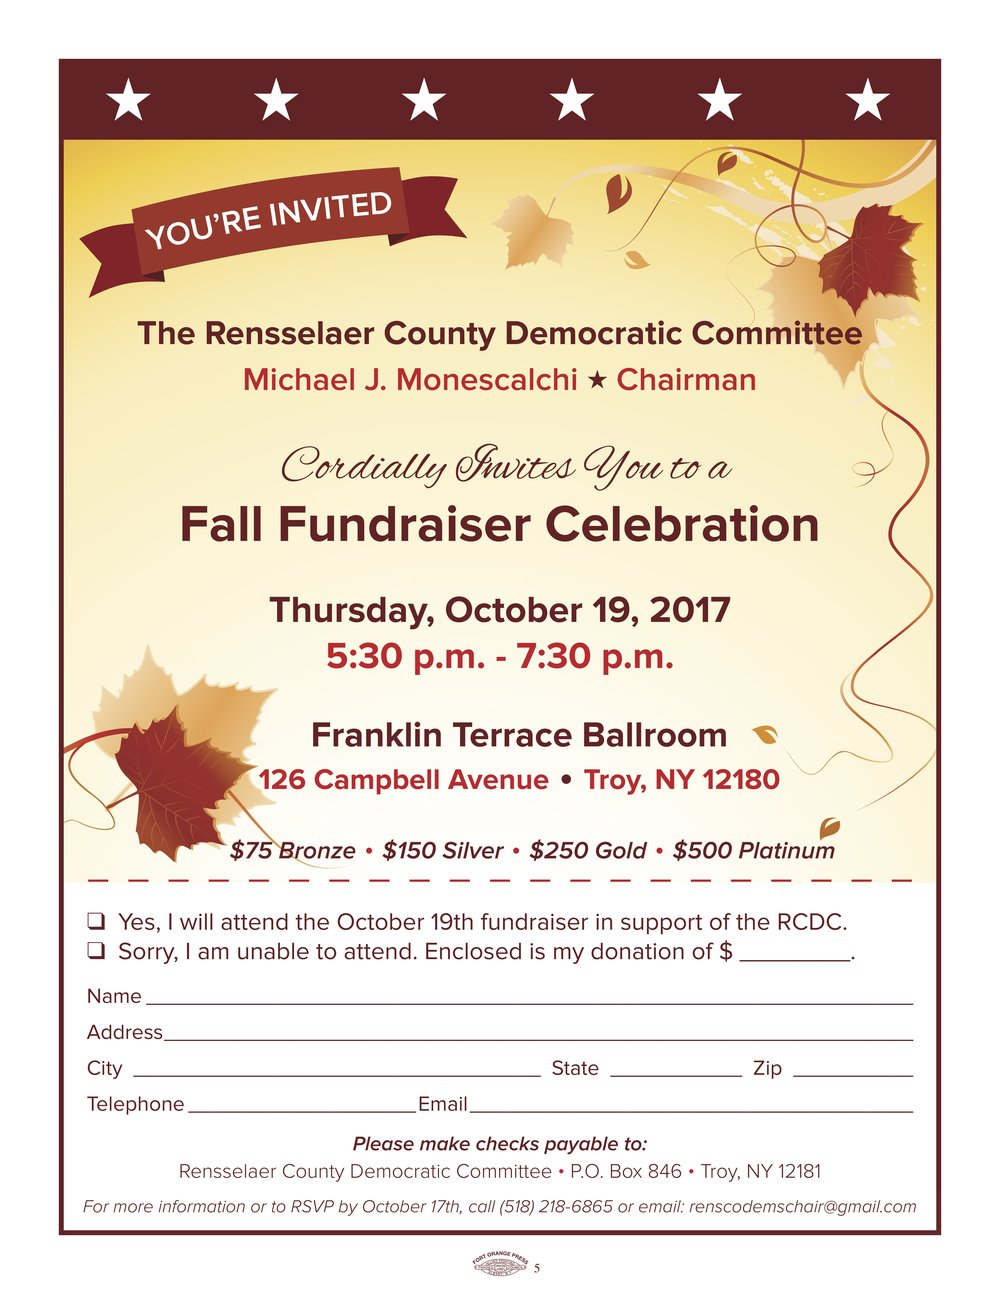 RCDC Fall 2017 Fundraiser Invitation.jpg